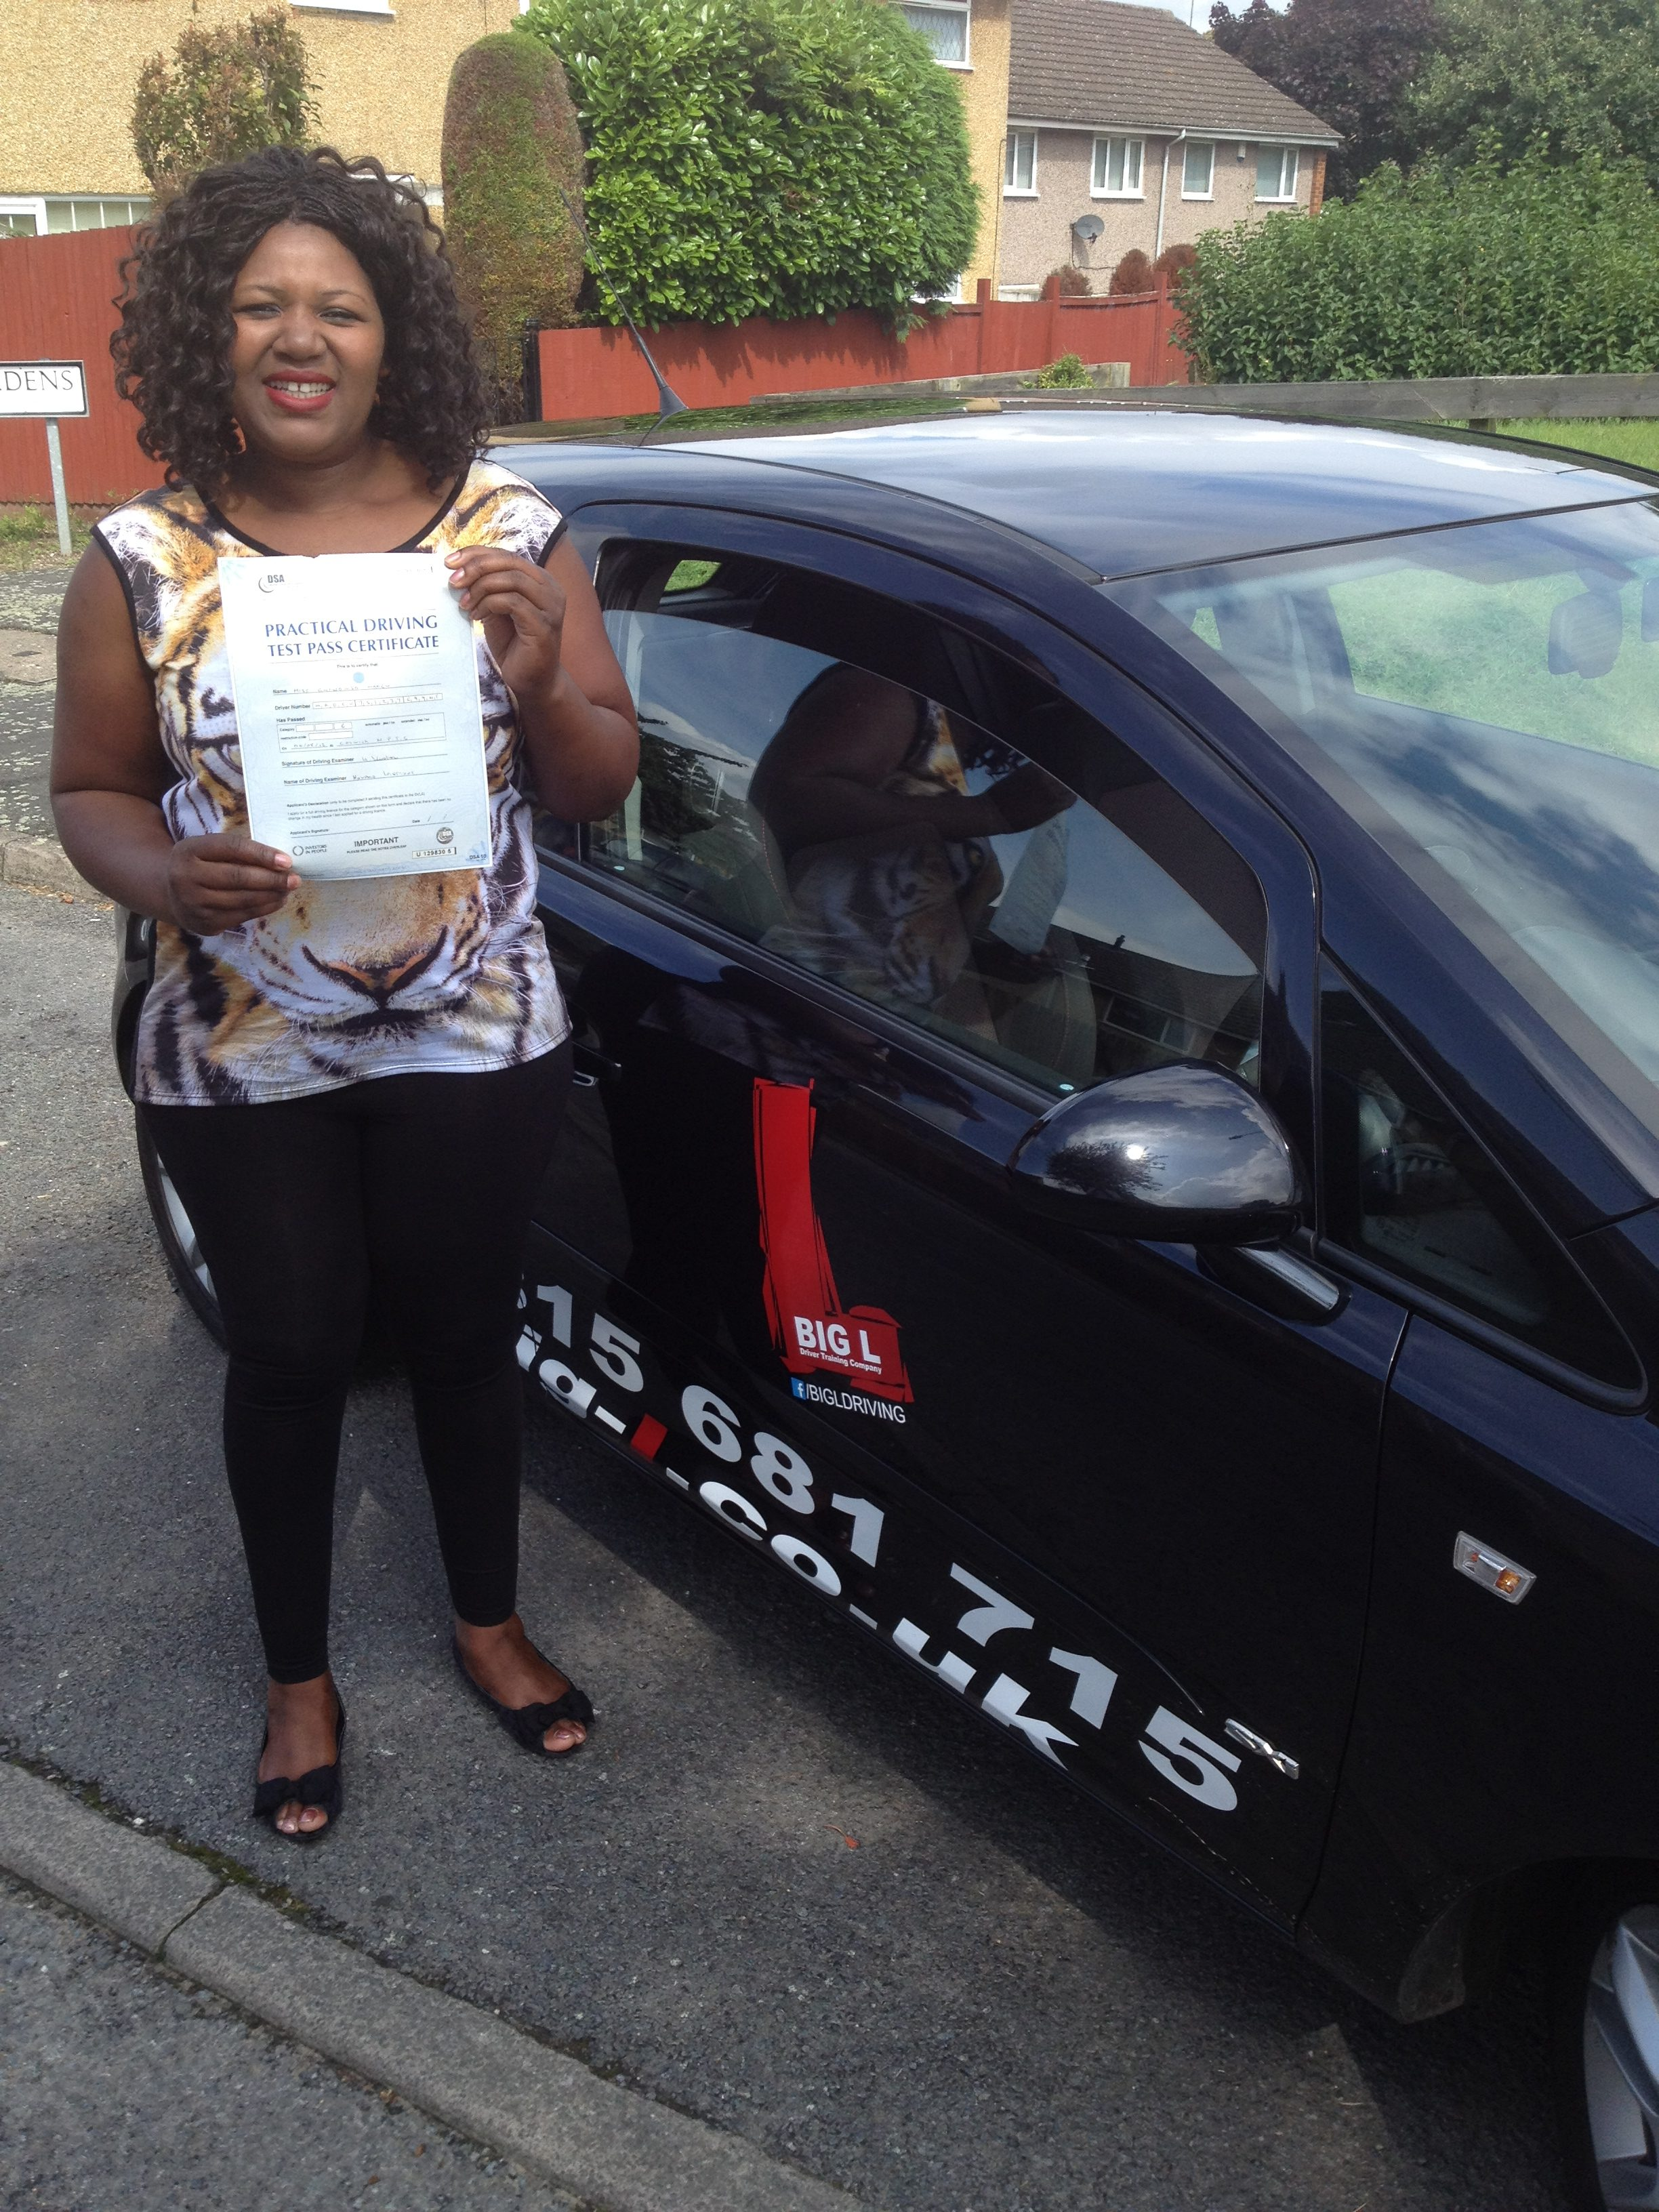 driving lessons near me driving schools near me driving instructors near me